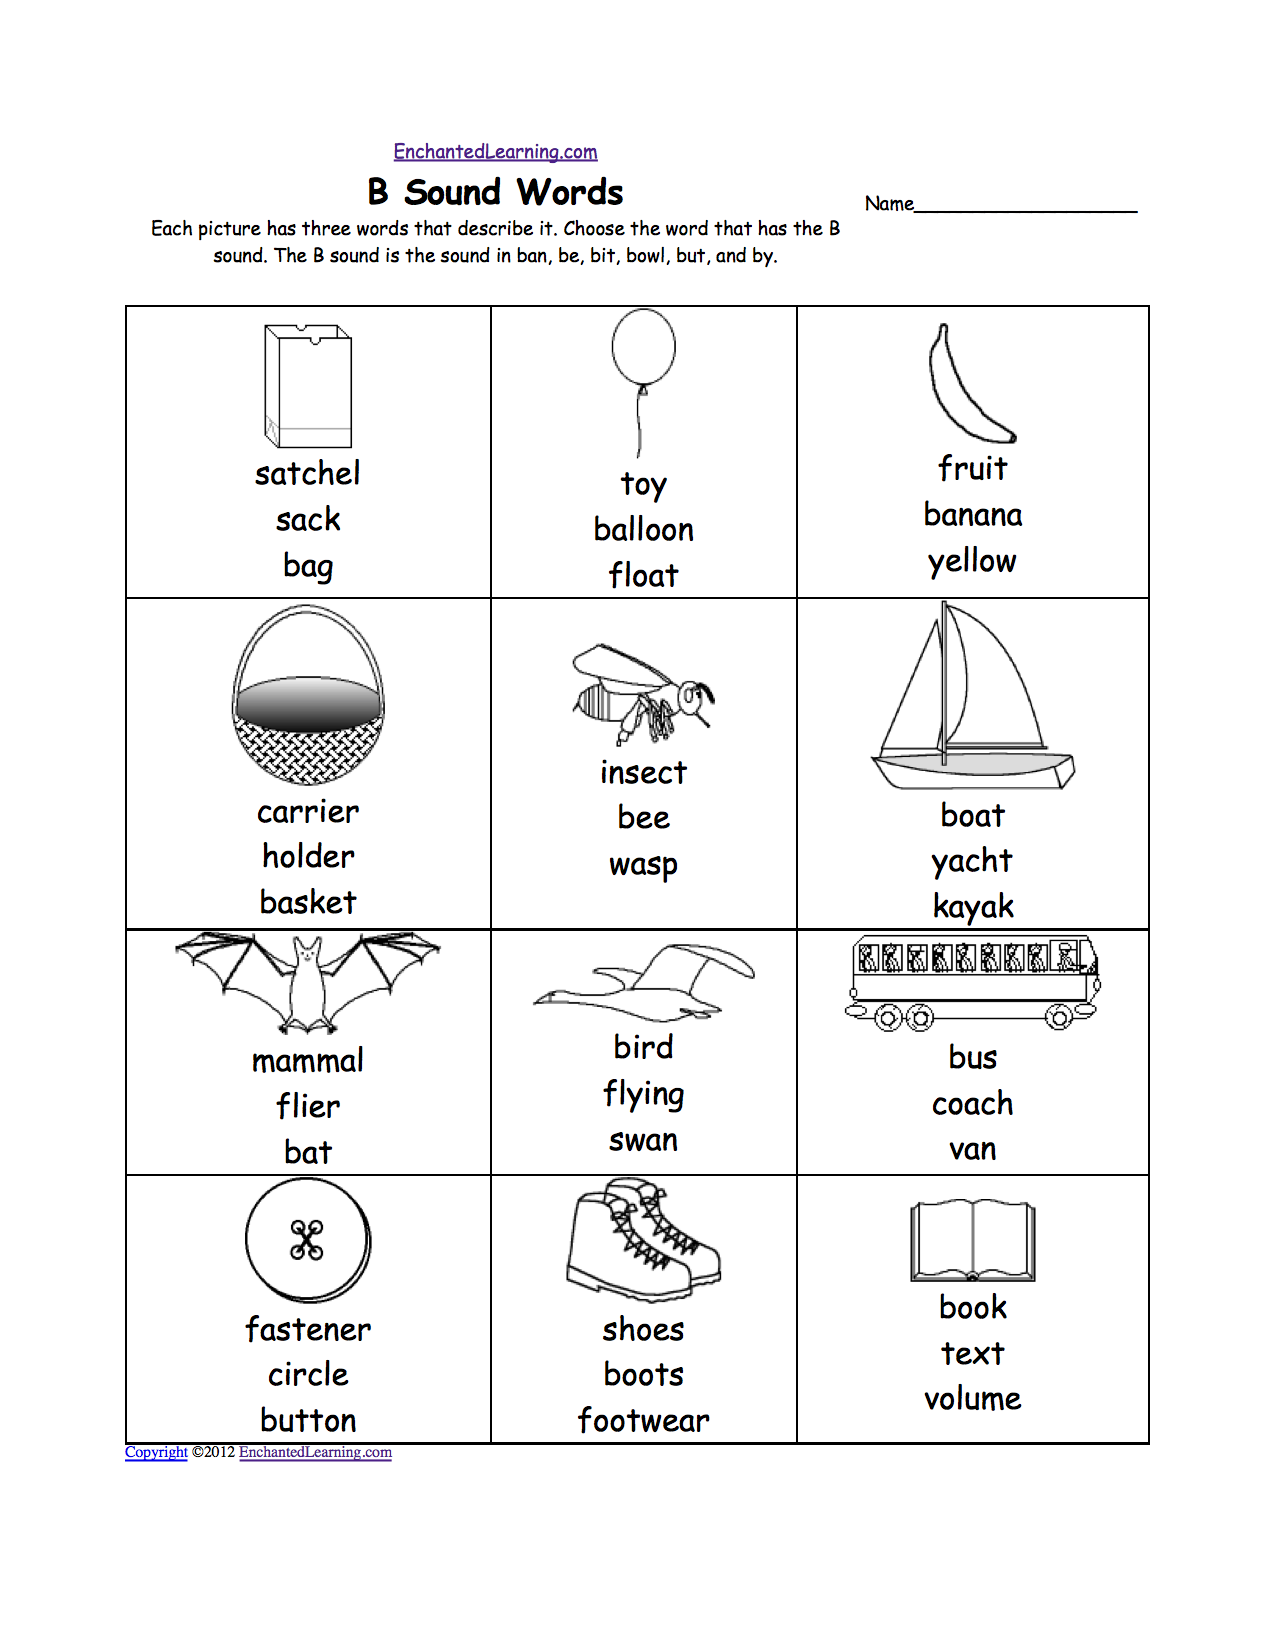 Aldiablosus  Pretty Phonics Worksheets Multiple Choice Worksheets To Print  With Glamorous Quotbquot Sound Phonics Worksheet Multiple Choice Each Picture Has Three Words That Describe It Choose The Word That Has A Quotbquot Sound The Quotbquot Sound Is The Sound  With Archaic Verbs Worksheets For Grade  Also Forms Of Verbs Worksheets In Addition Equations With Integers Worksheets And Solving Quadratic Equation Worksheet As Well As Food Worksheets For Kids Additionally Free Science Worksheets Th Grade From Enchantedlearningcom With Aldiablosus  Glamorous Phonics Worksheets Multiple Choice Worksheets To Print  With Archaic Quotbquot Sound Phonics Worksheet Multiple Choice Each Picture Has Three Words That Describe It Choose The Word That Has A Quotbquot Sound The Quotbquot Sound Is The Sound  And Pretty Verbs Worksheets For Grade  Also Forms Of Verbs Worksheets In Addition Equations With Integers Worksheets From Enchantedlearningcom